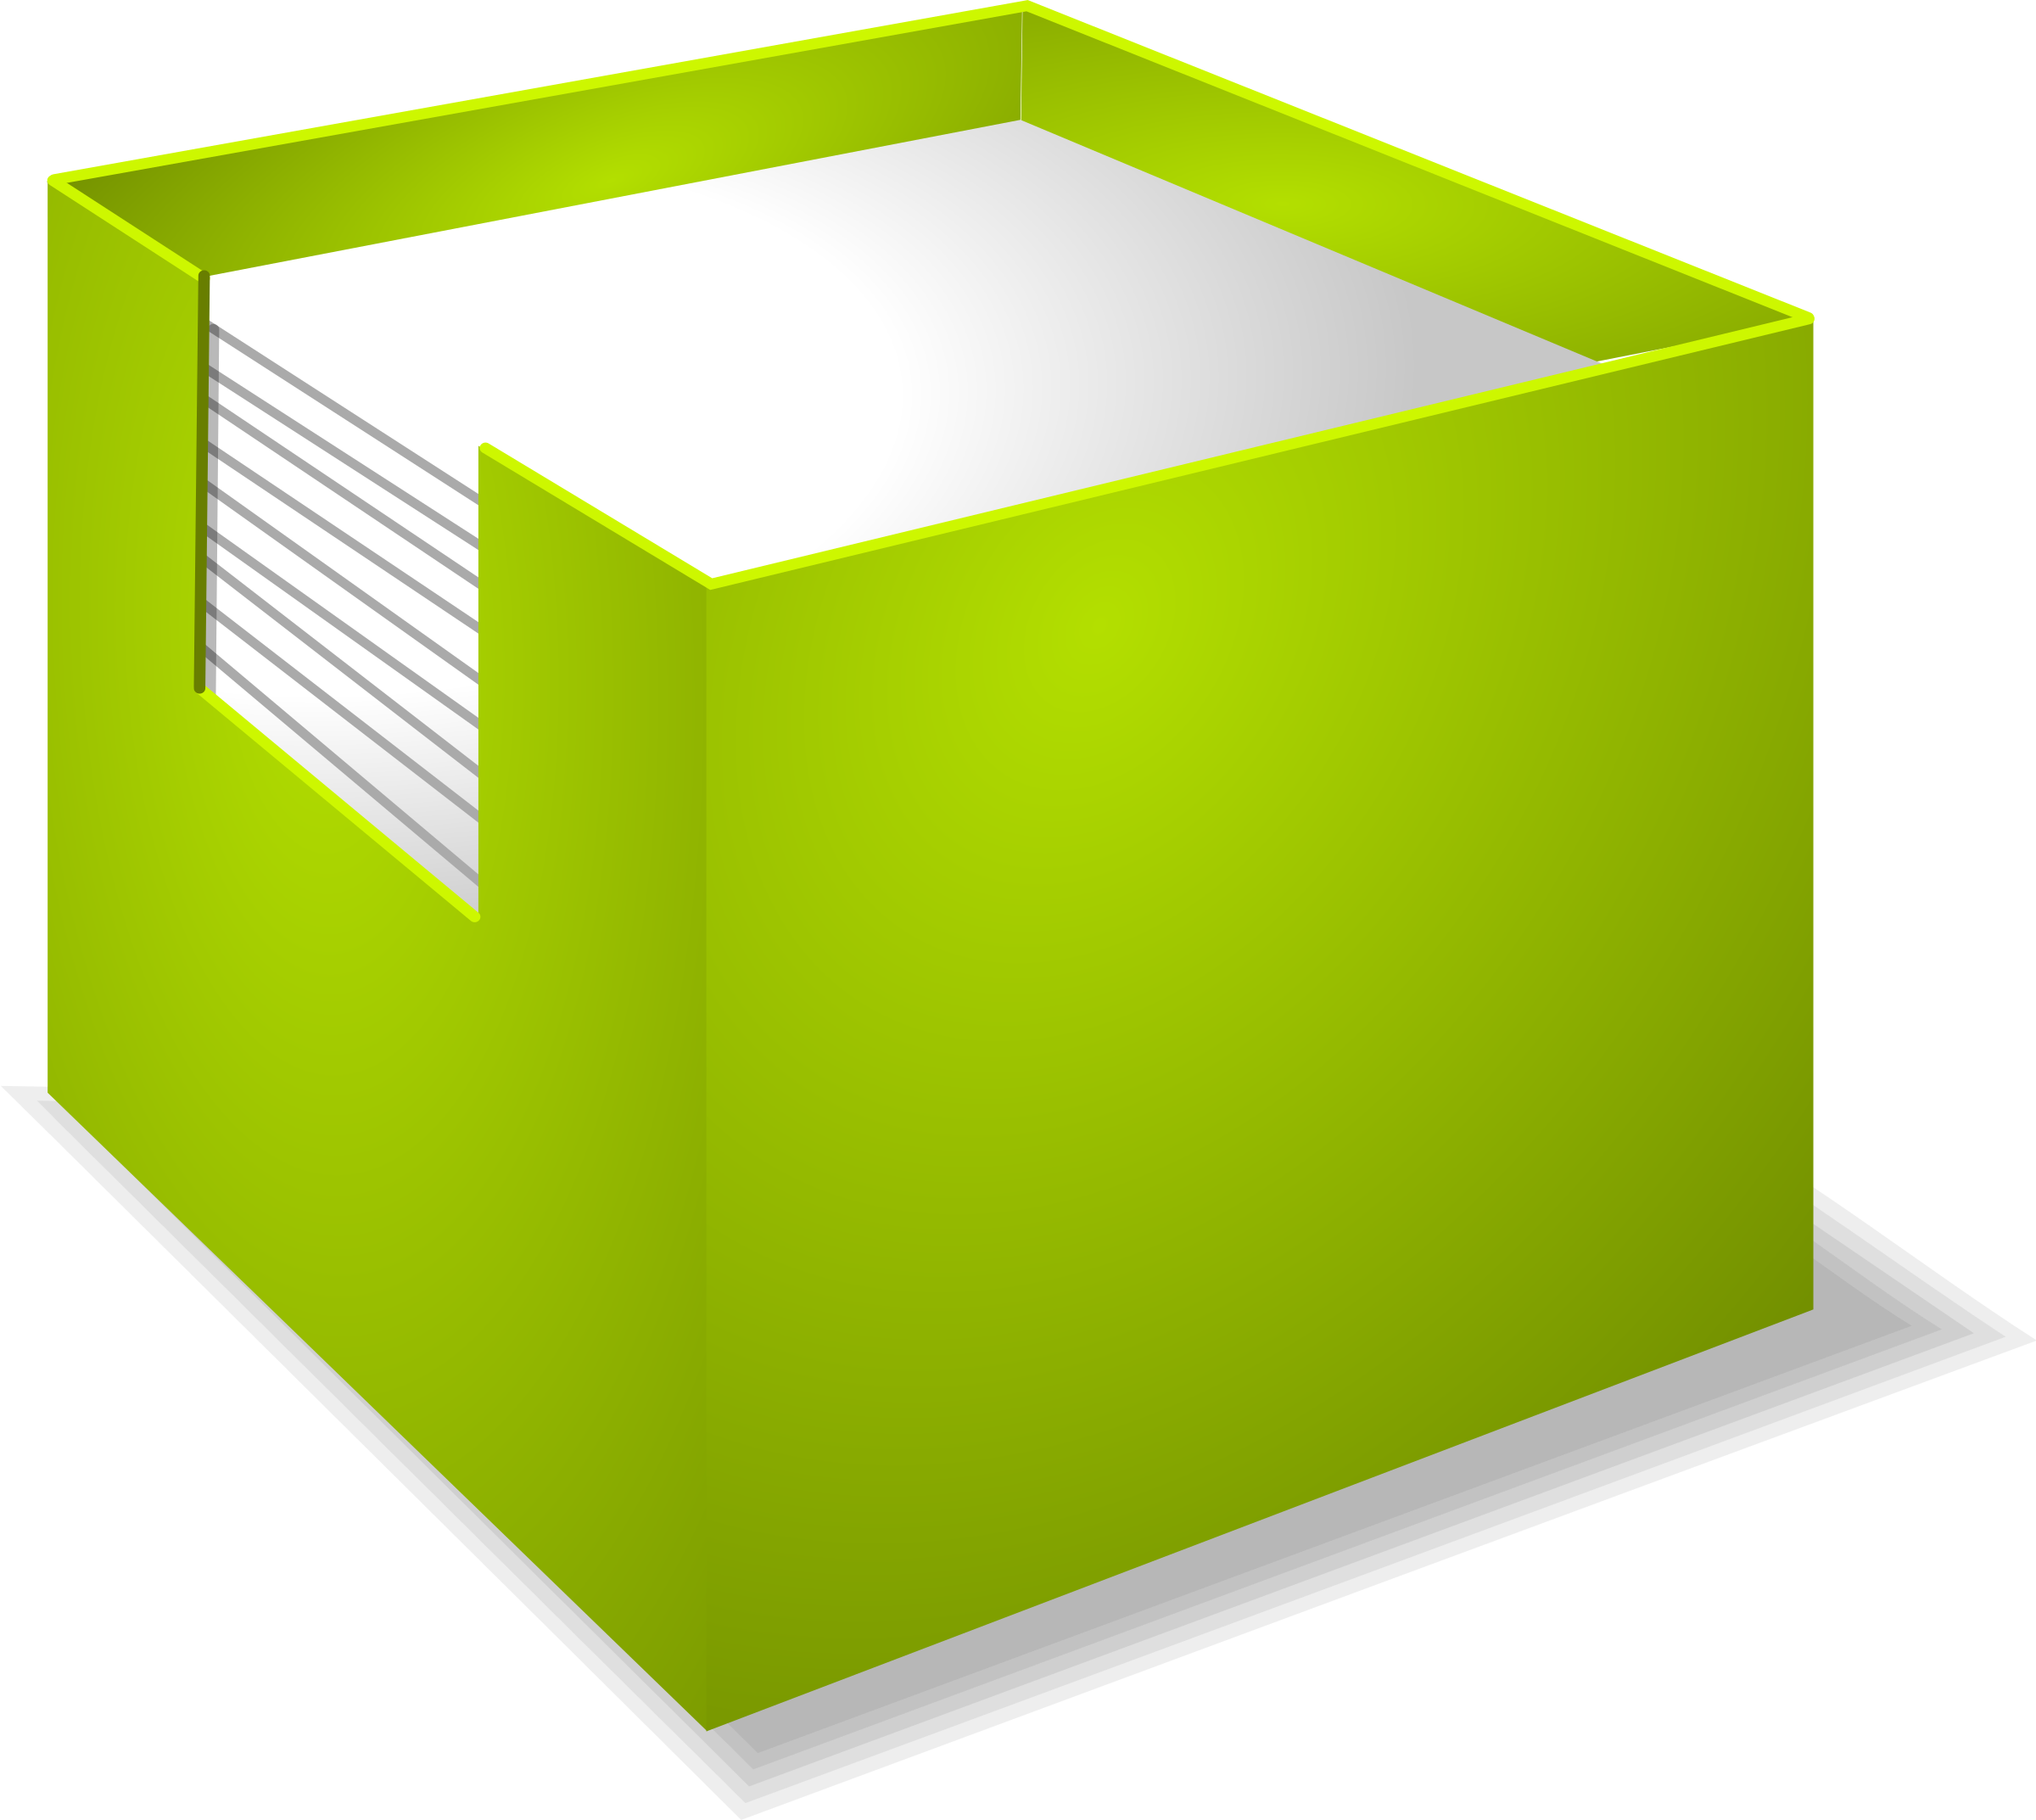 Note box png. Clipart notebox big image